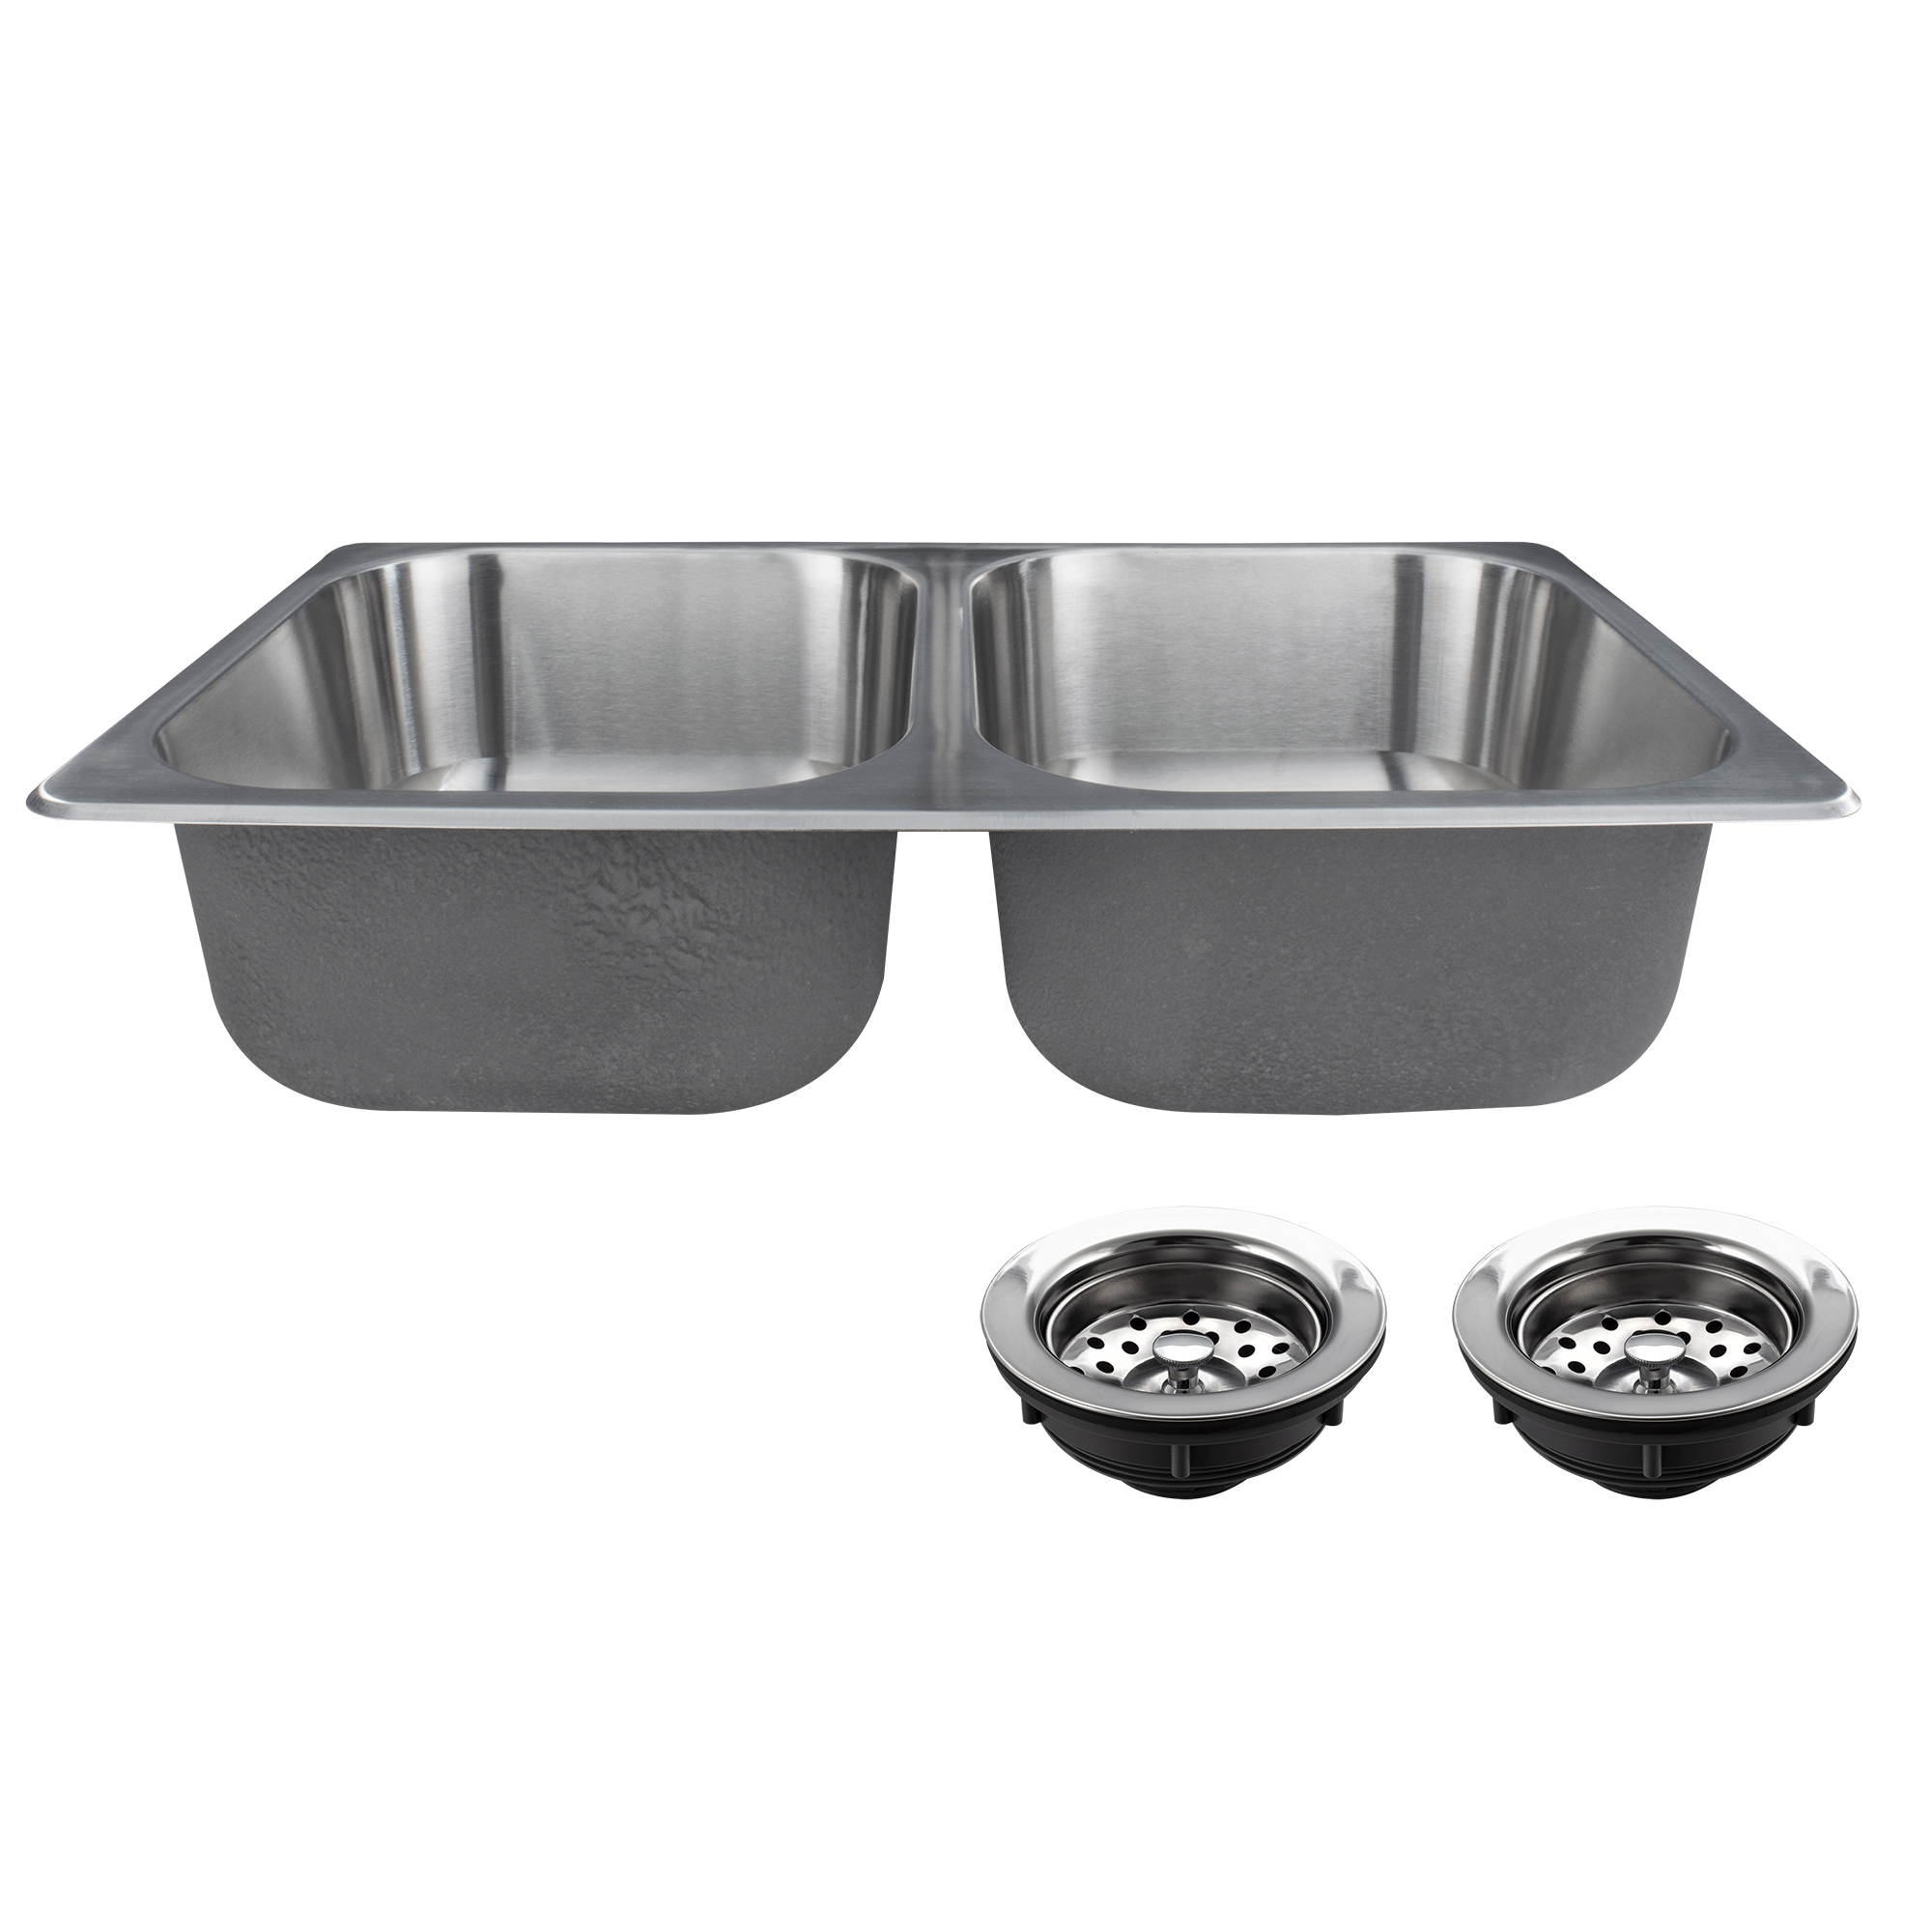 34291-1837-2-stainless-double-sink-strainer-combo.jpg